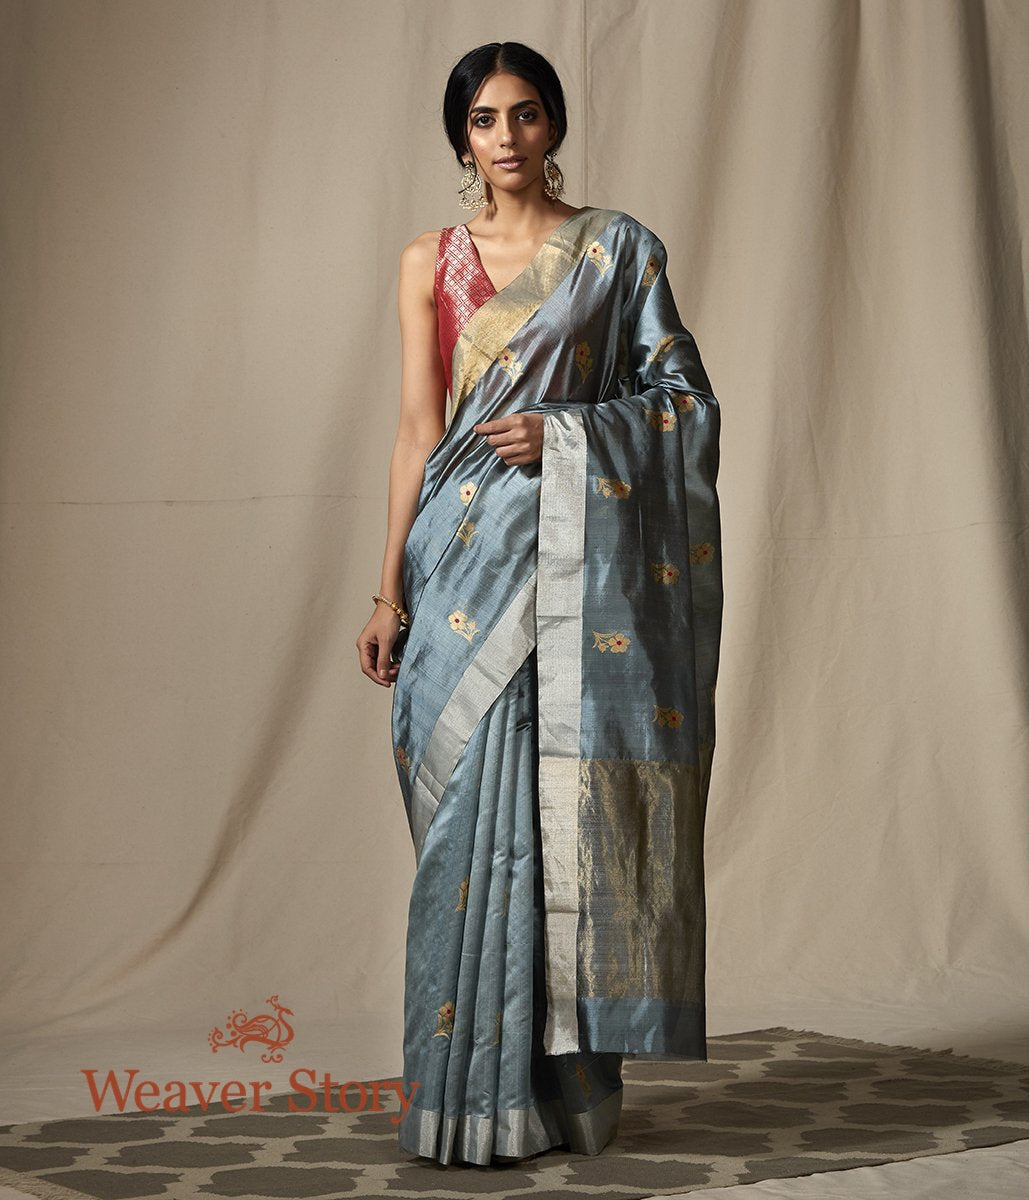 Handwoven Chanderi Silk Saree in Grey with Gold Flower Motifs